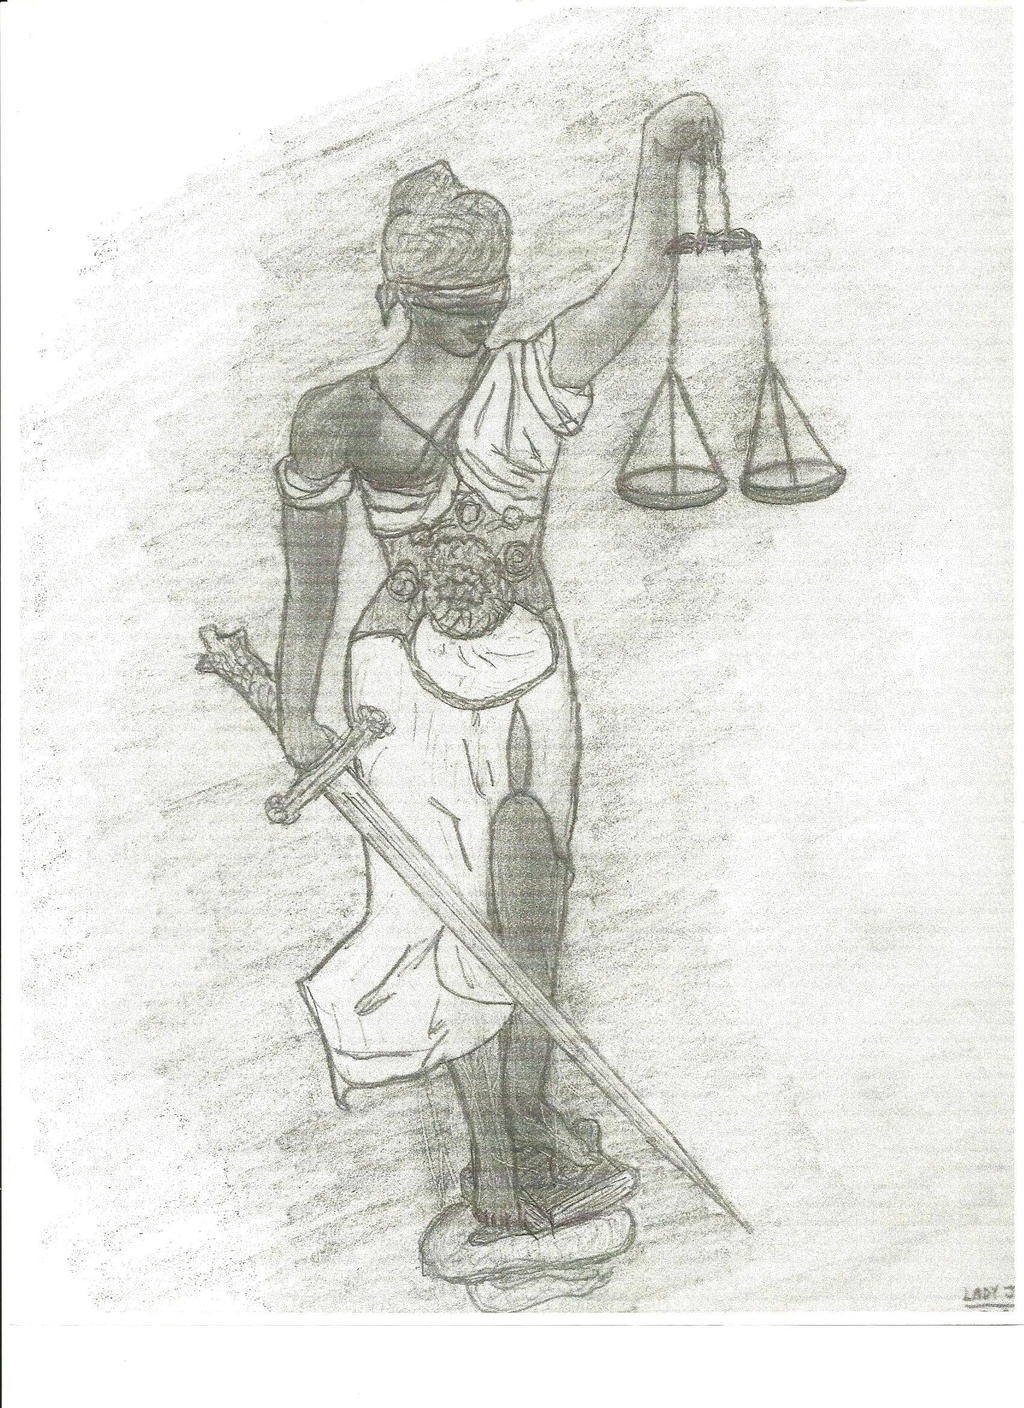 Lady Justice by semituf1 on DeviantArt